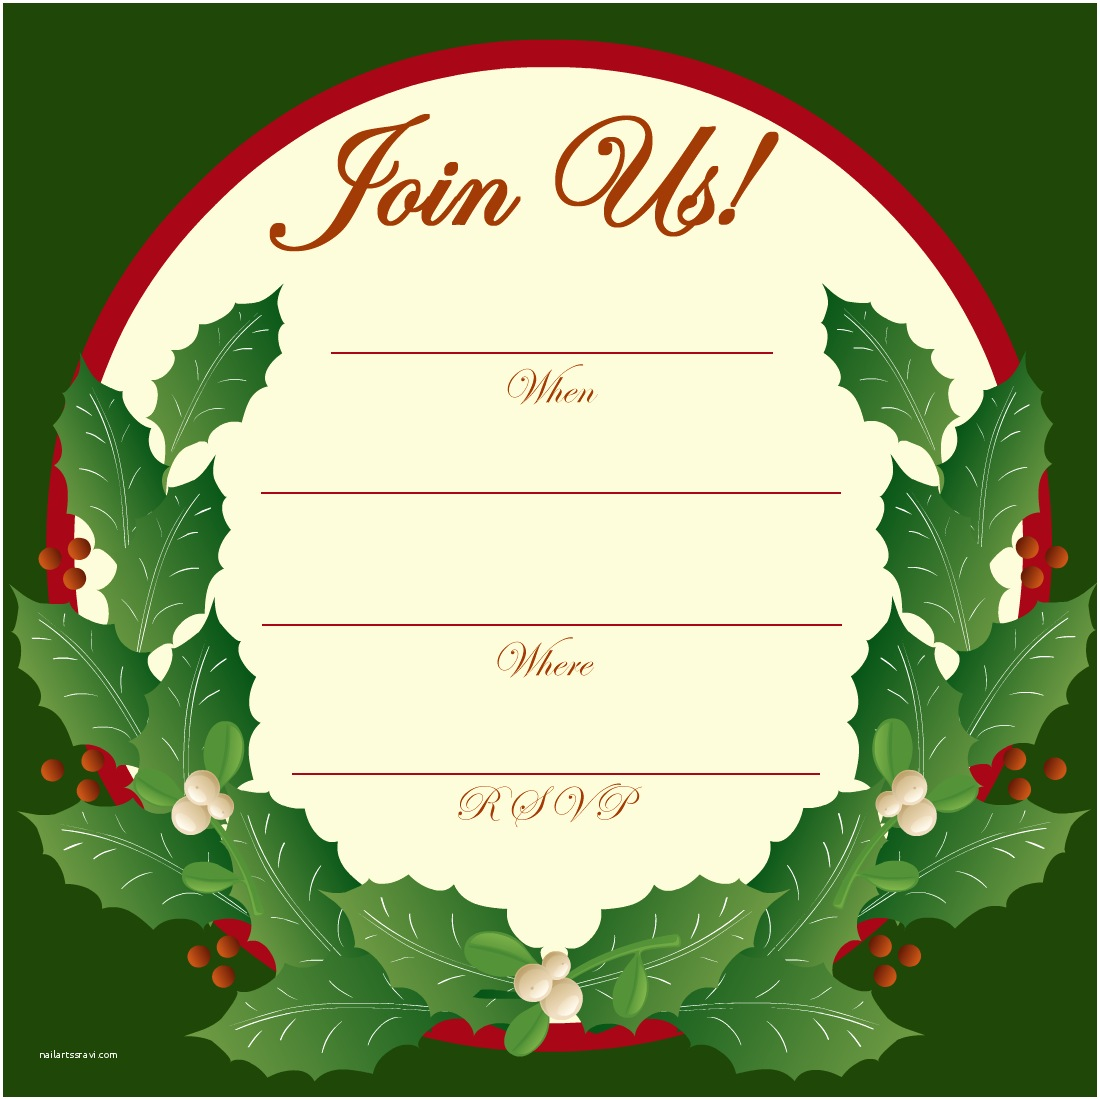 Free Christmas Party Invitations Christmas Wallpapers and and S Christmas